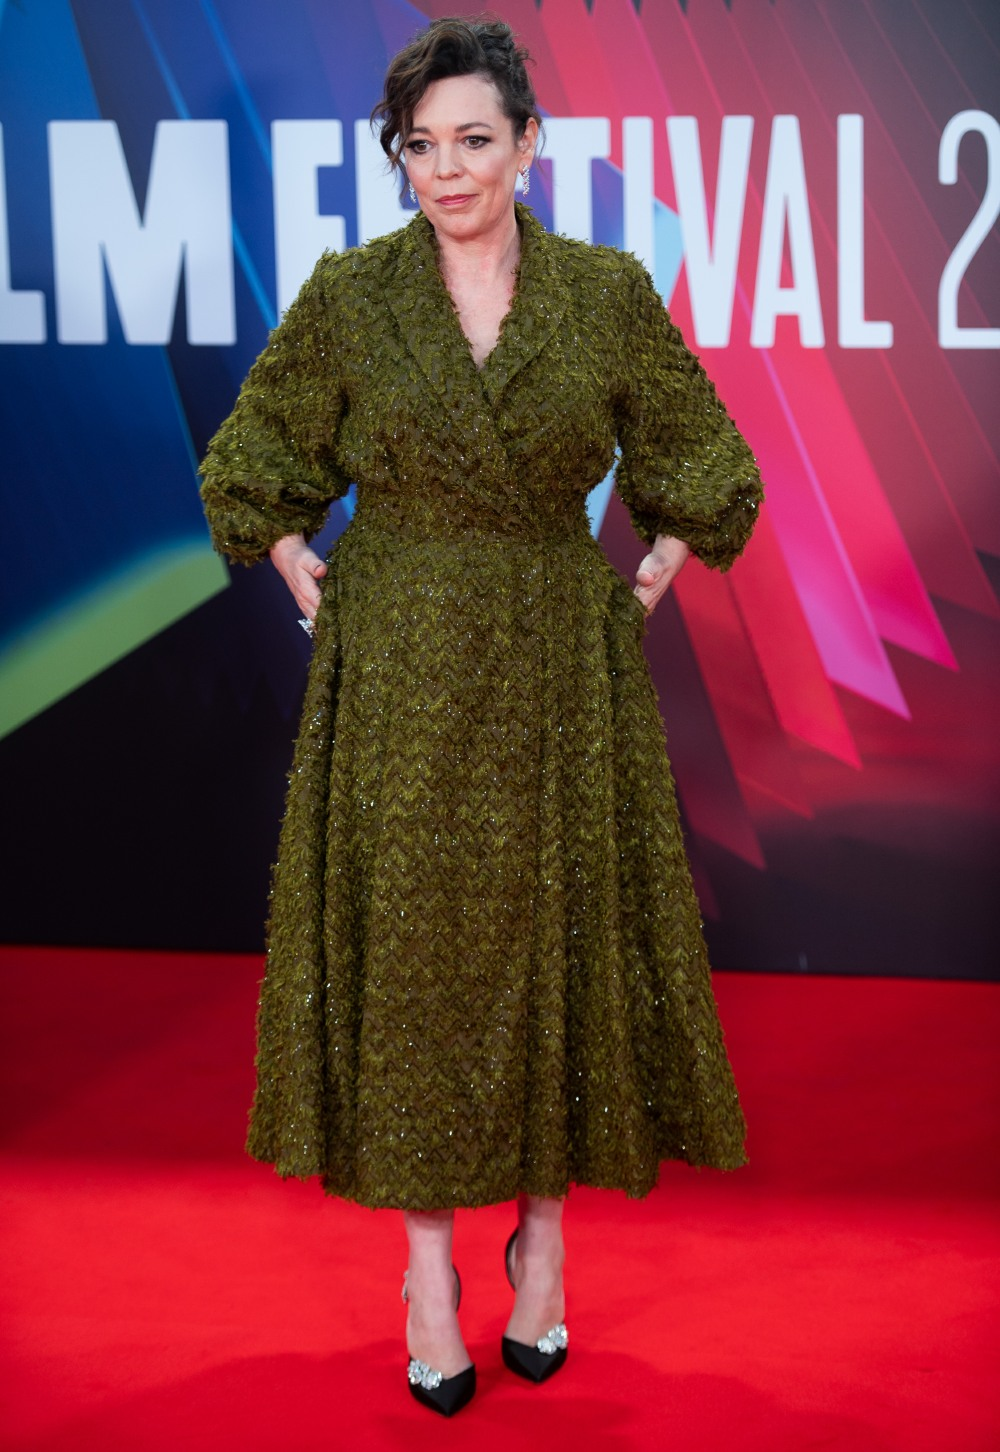 London Film Festival 2021 - The Lost Daugter UK Premiere Arrivals at Royal Festival Hall, Southbank Centre, London